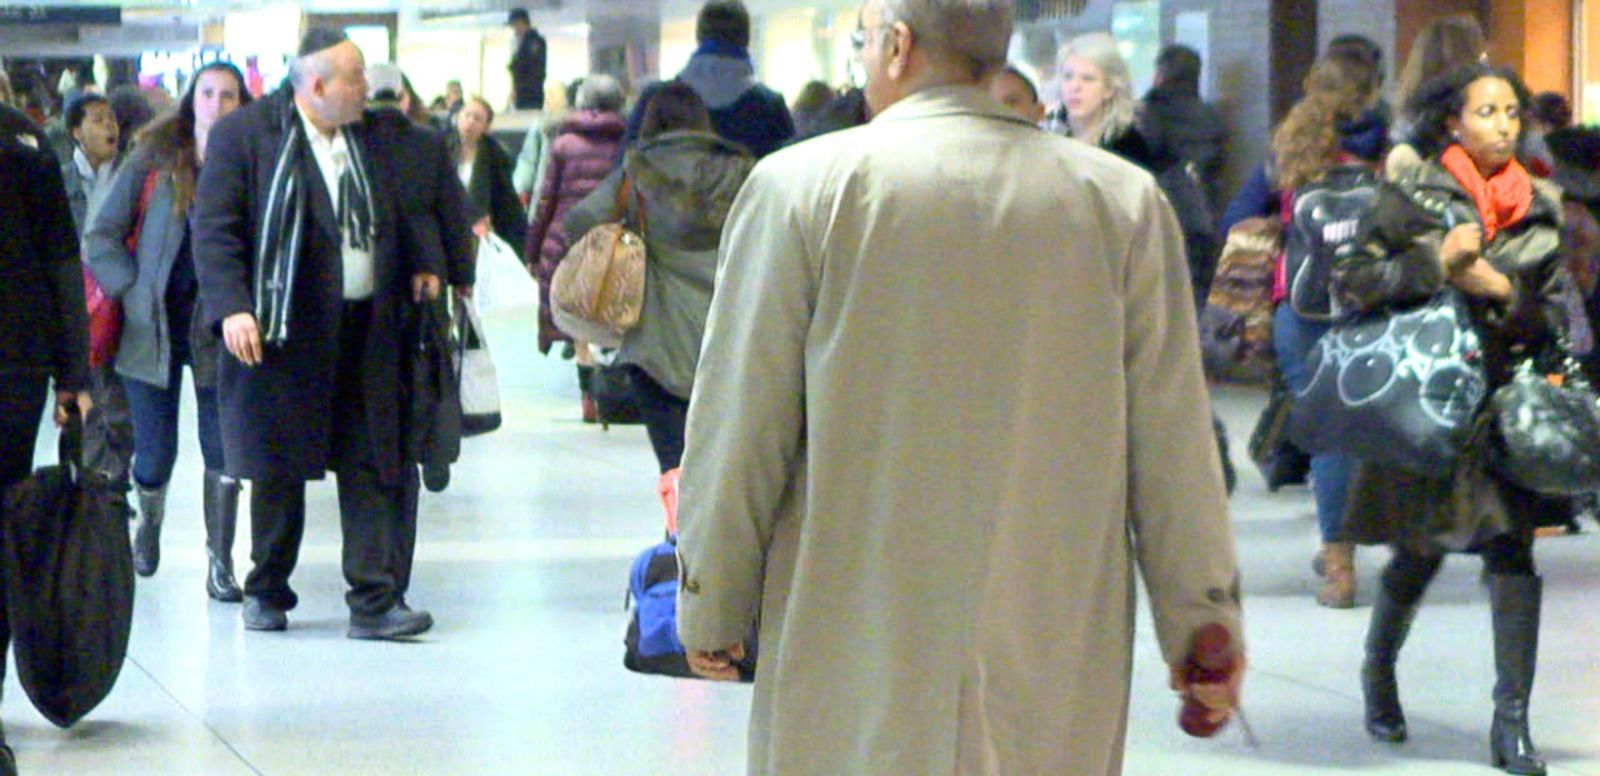 VIDEO: Impact of Penn Station Measles Exposure Investigated